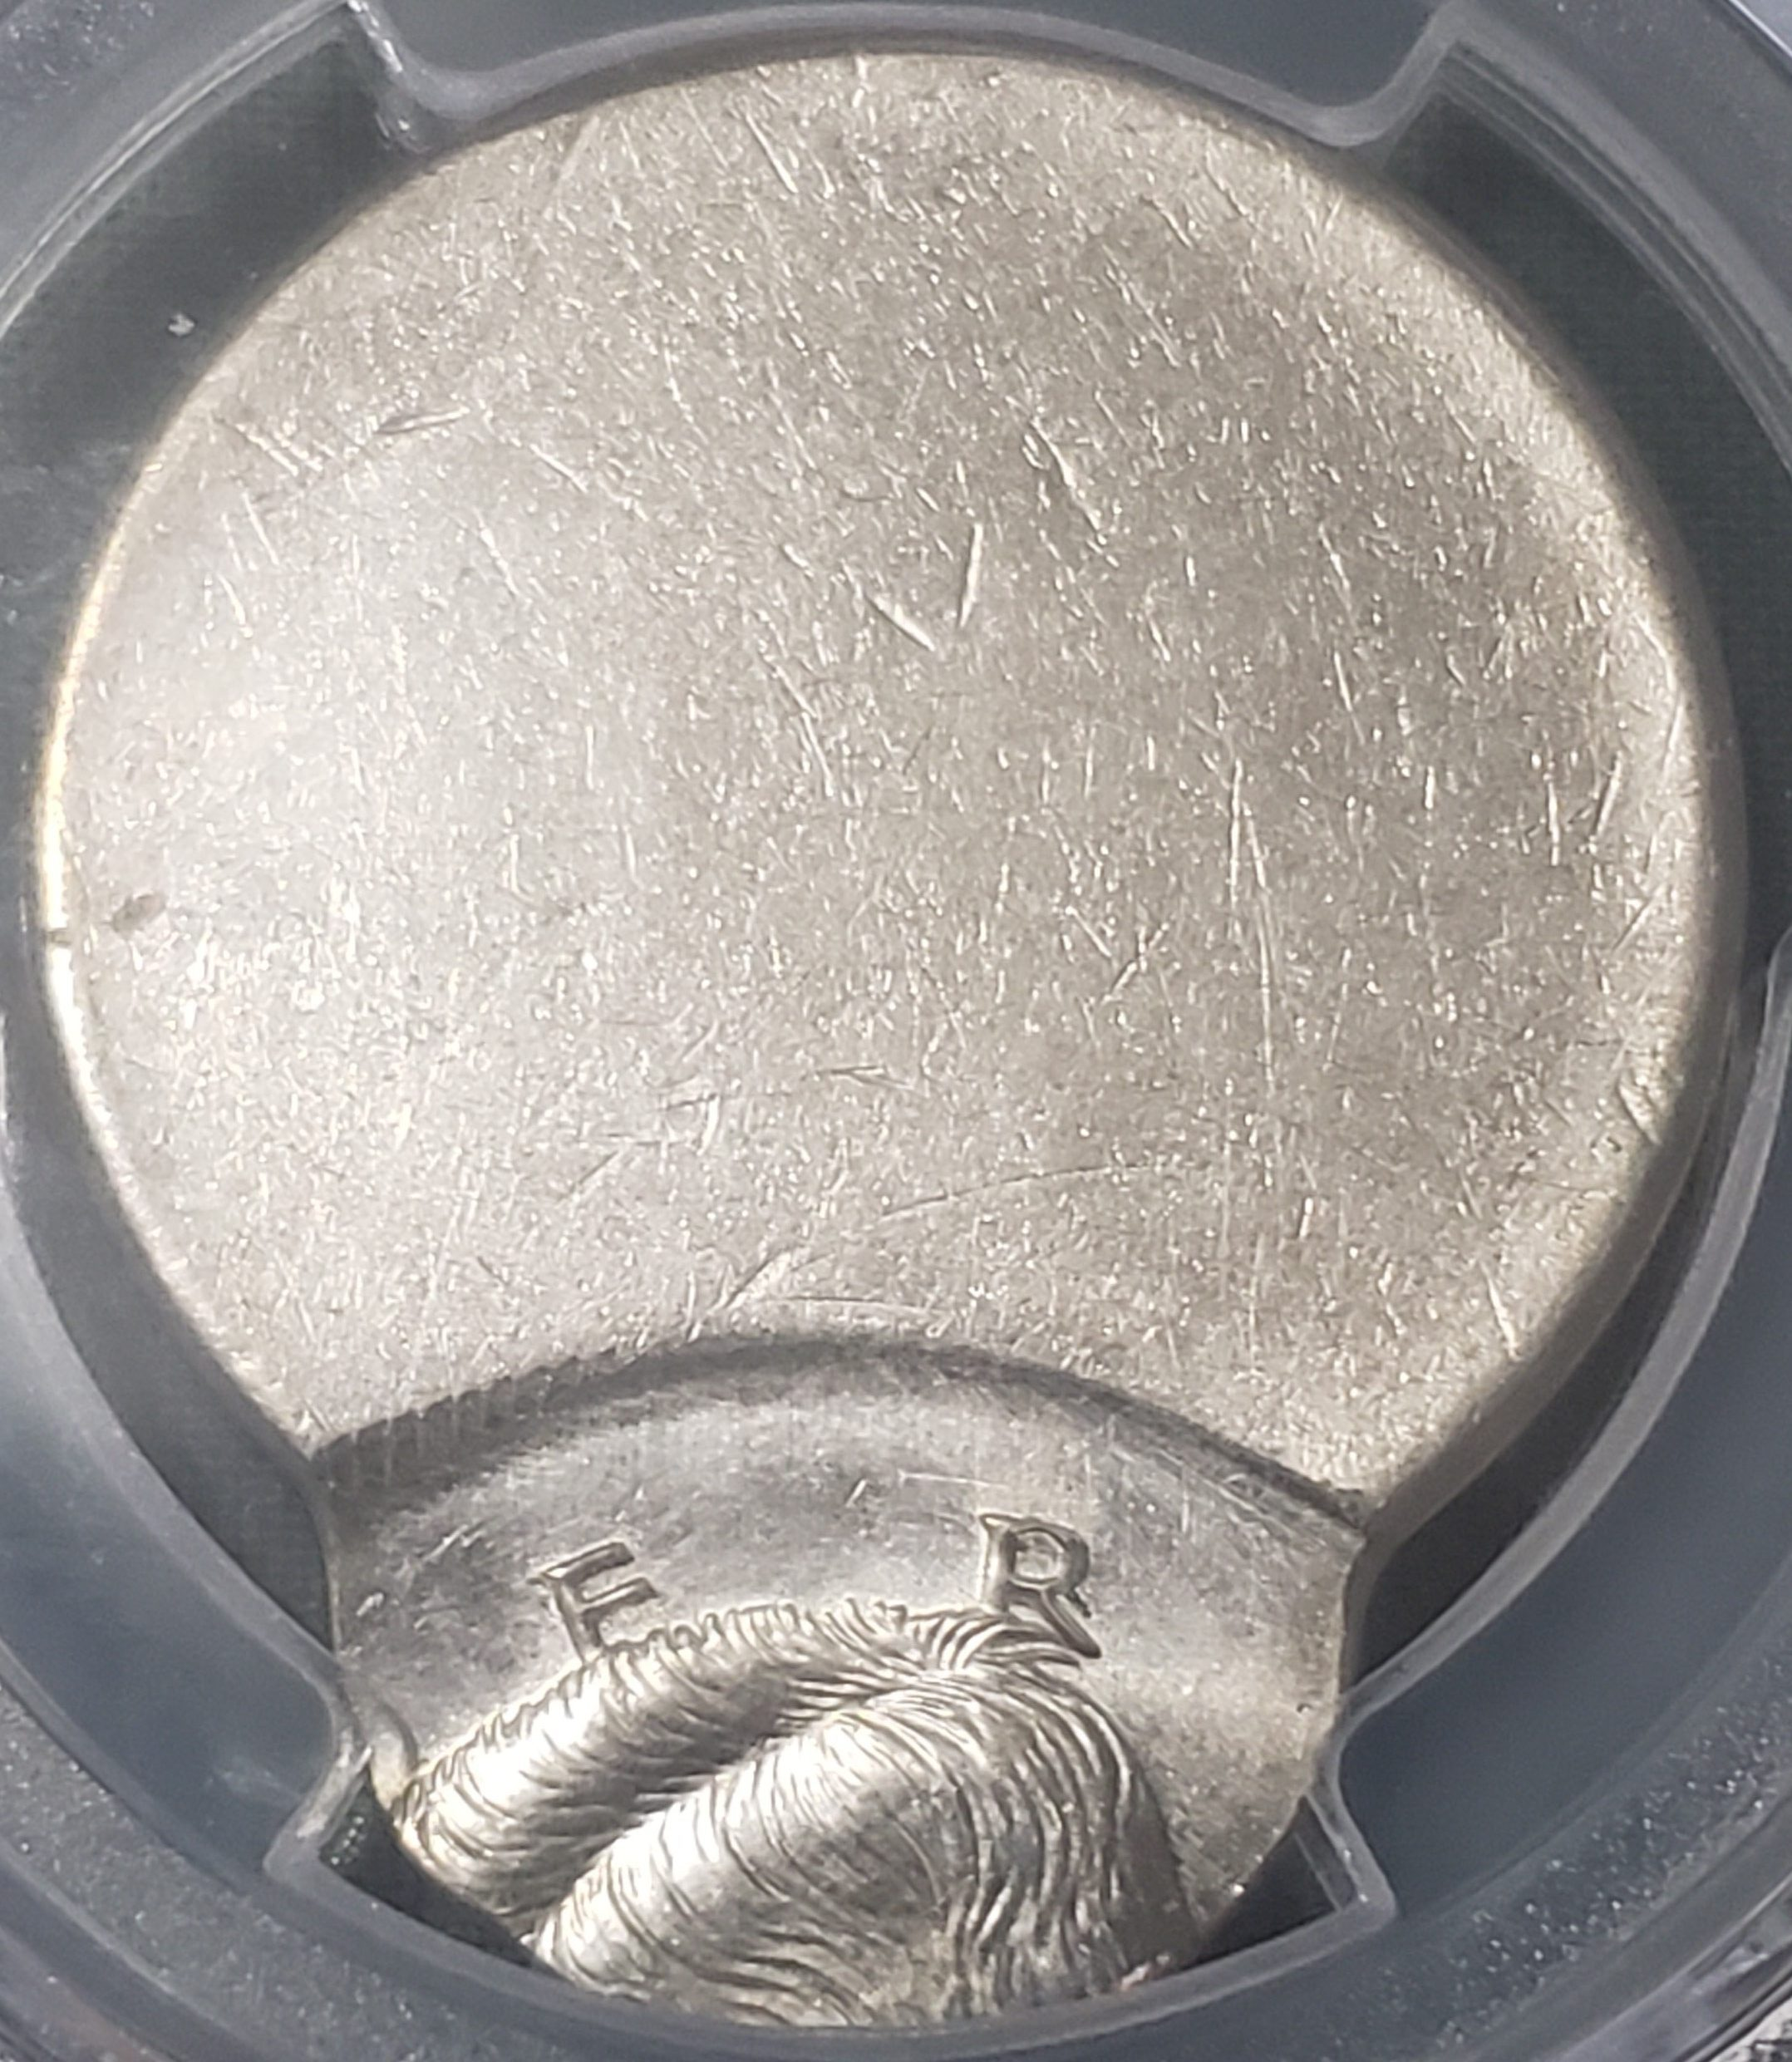 How are off center coins made?